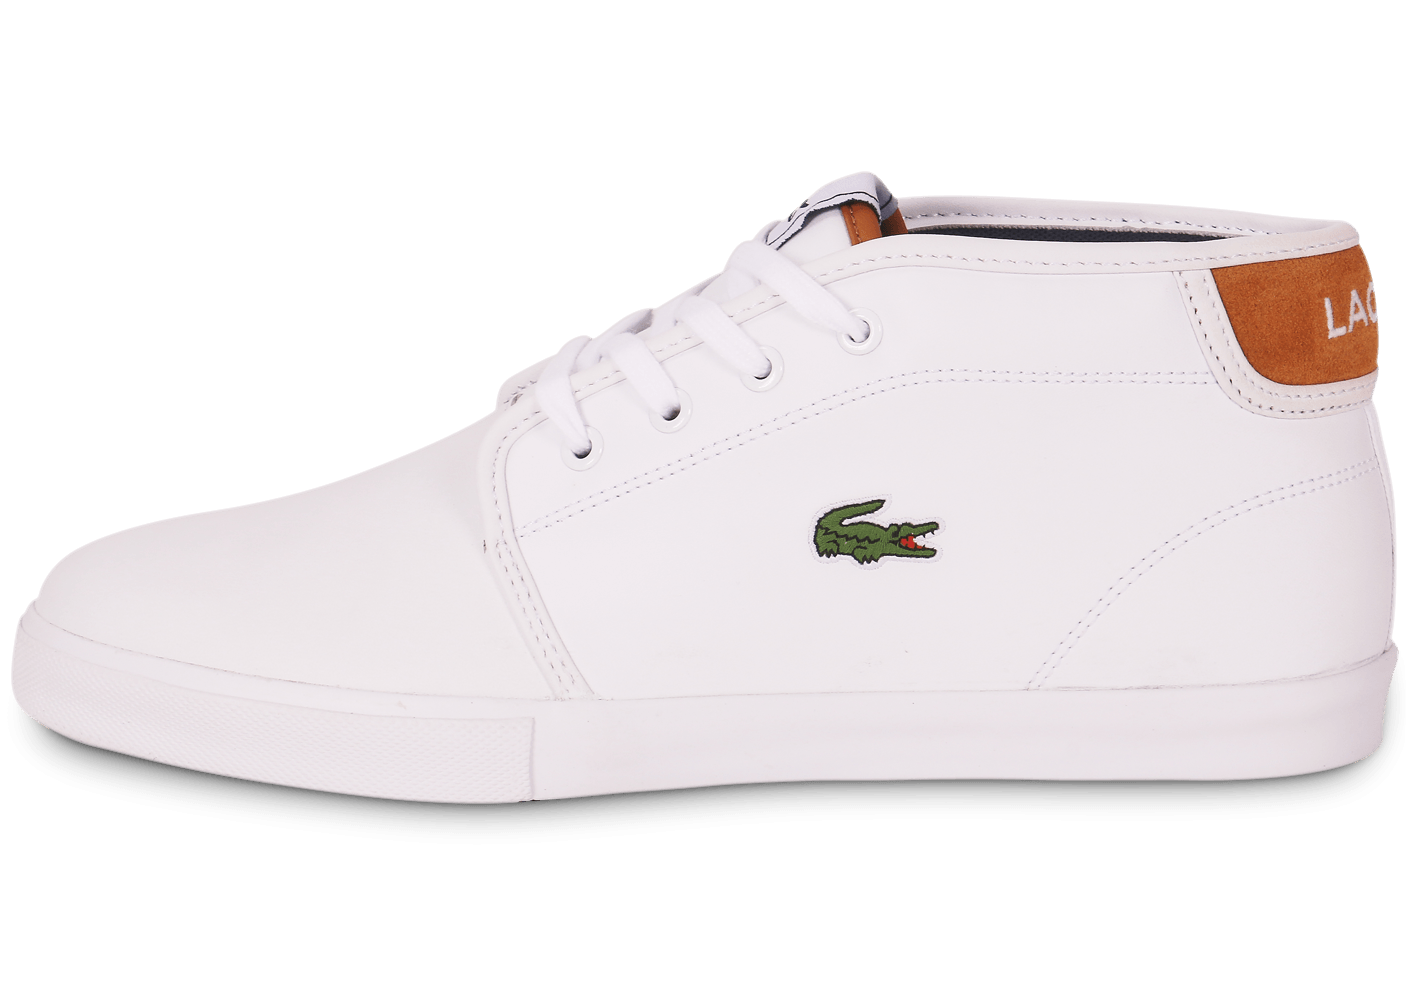 6a592dd3898 Lacoste Ampthill Blanche - Chaussures Baskets homme - Chausport